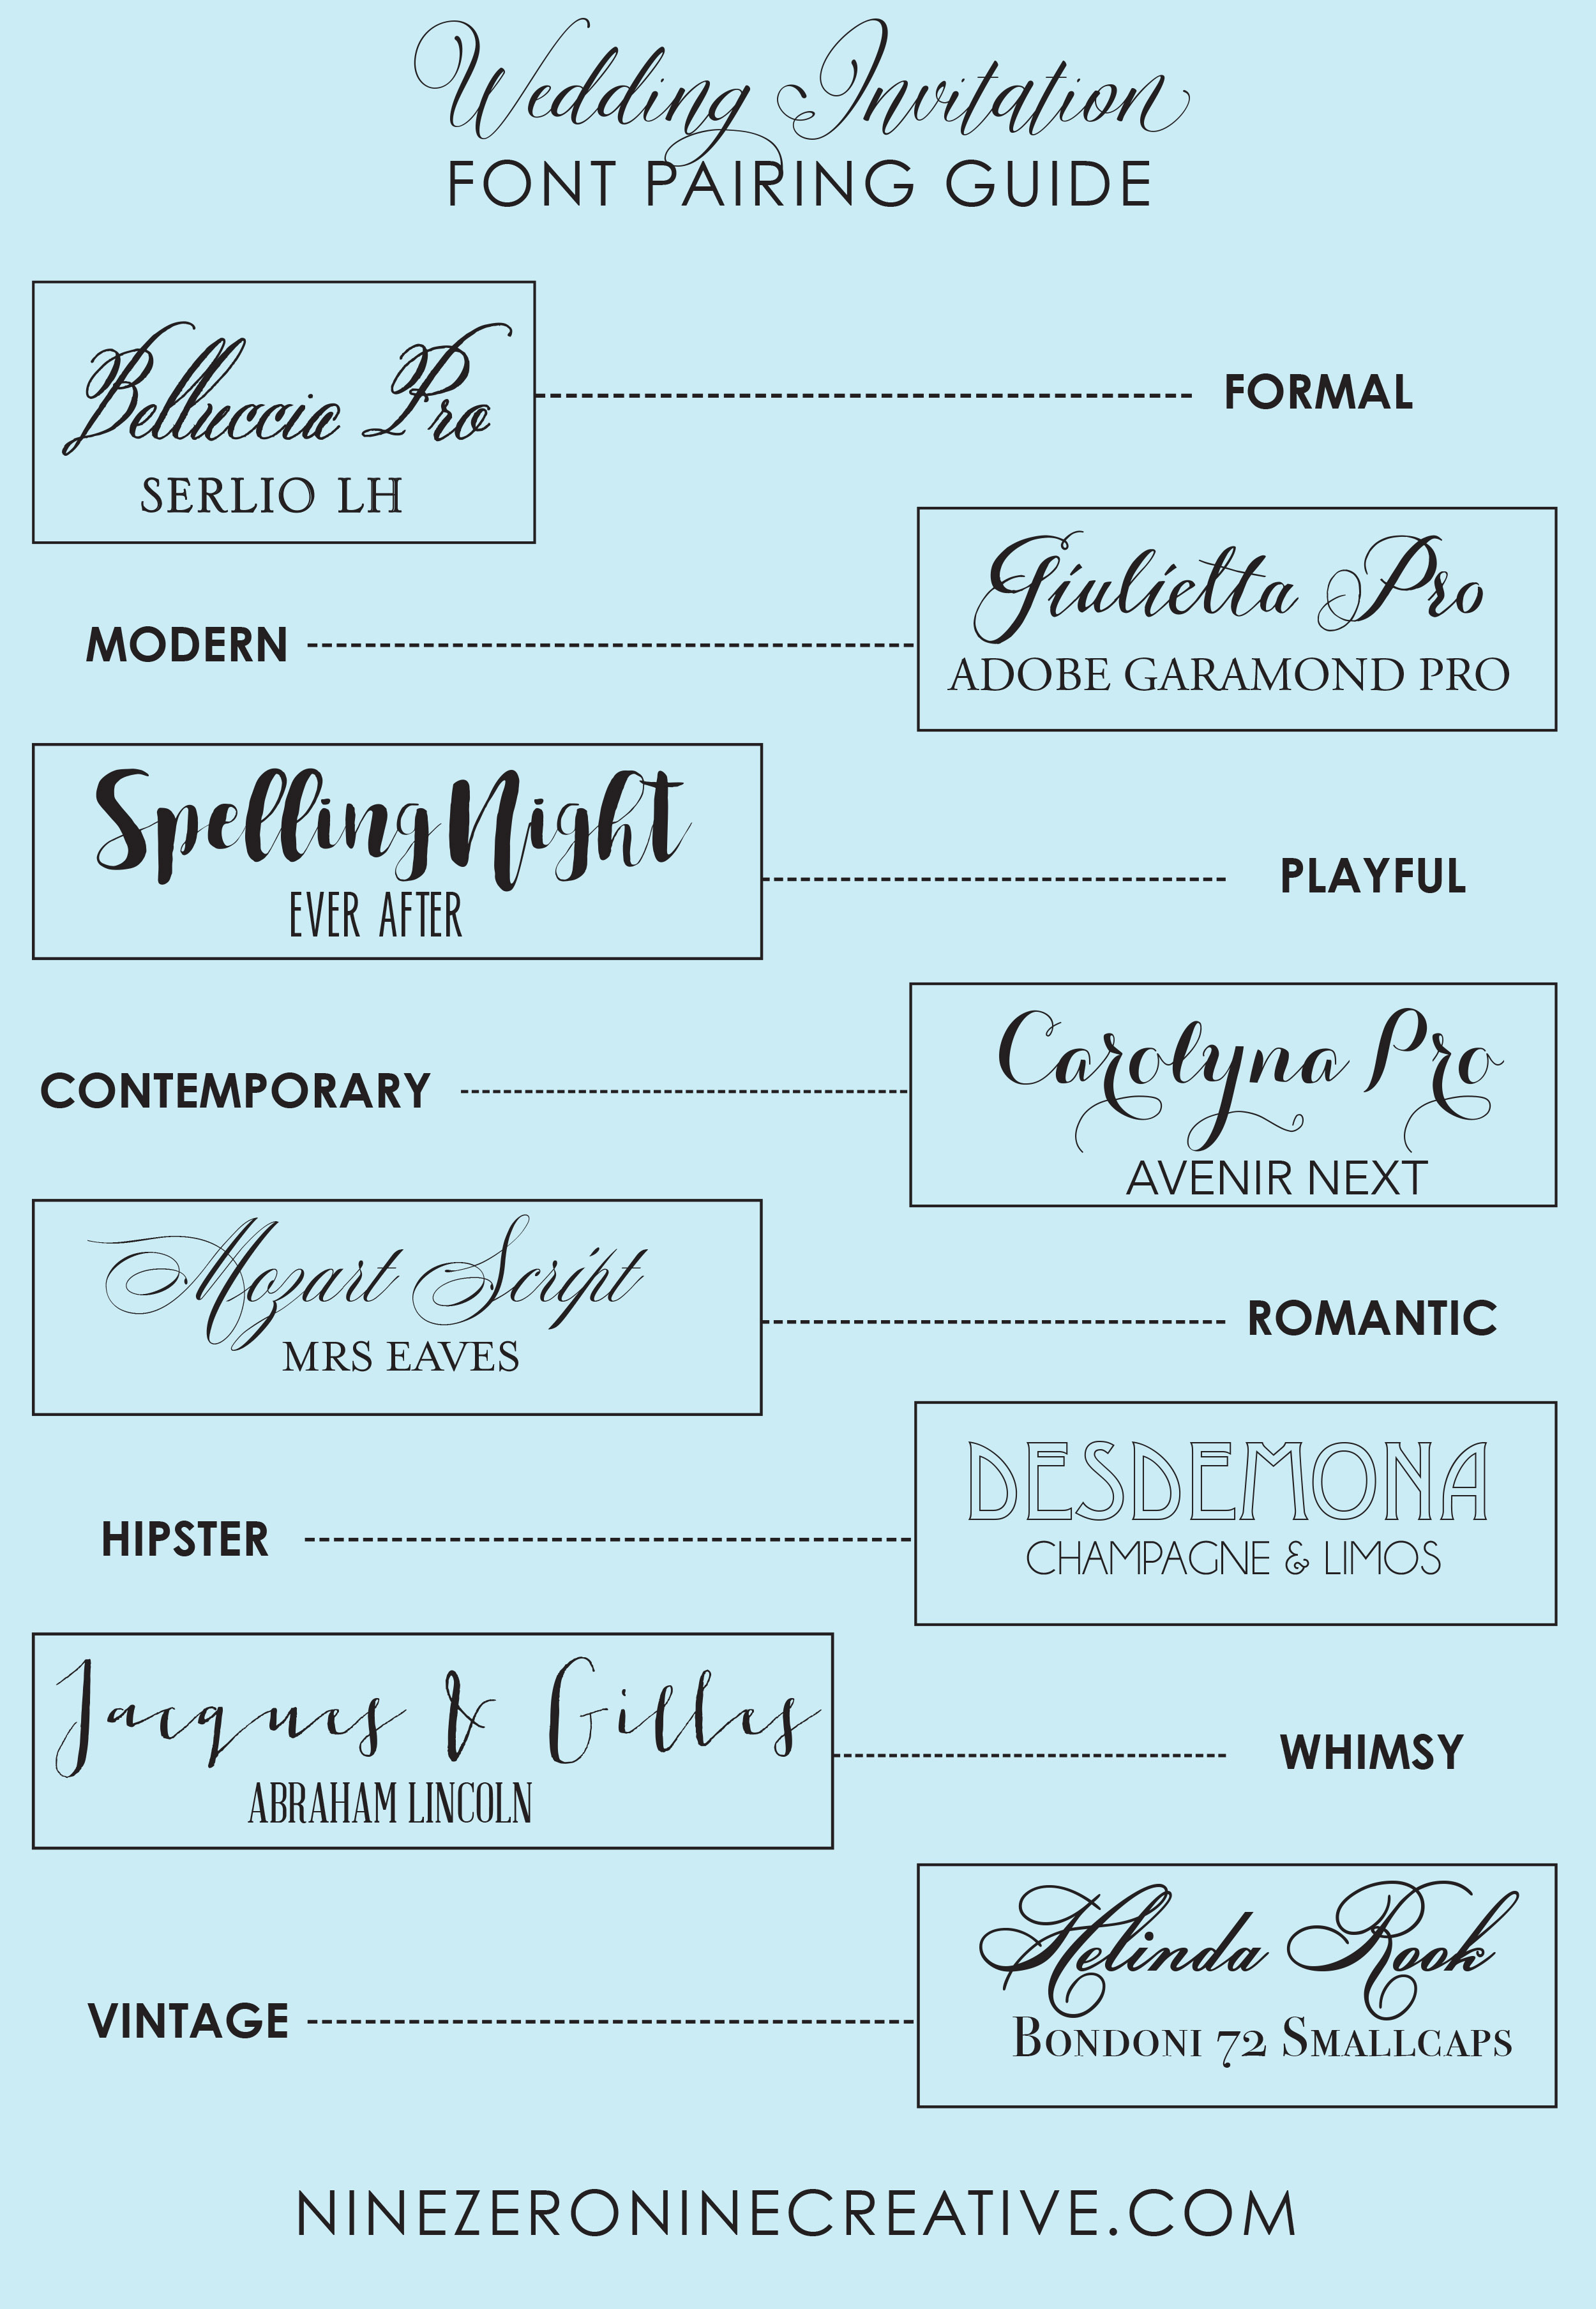 wedding invitation font pairing guide.jpg